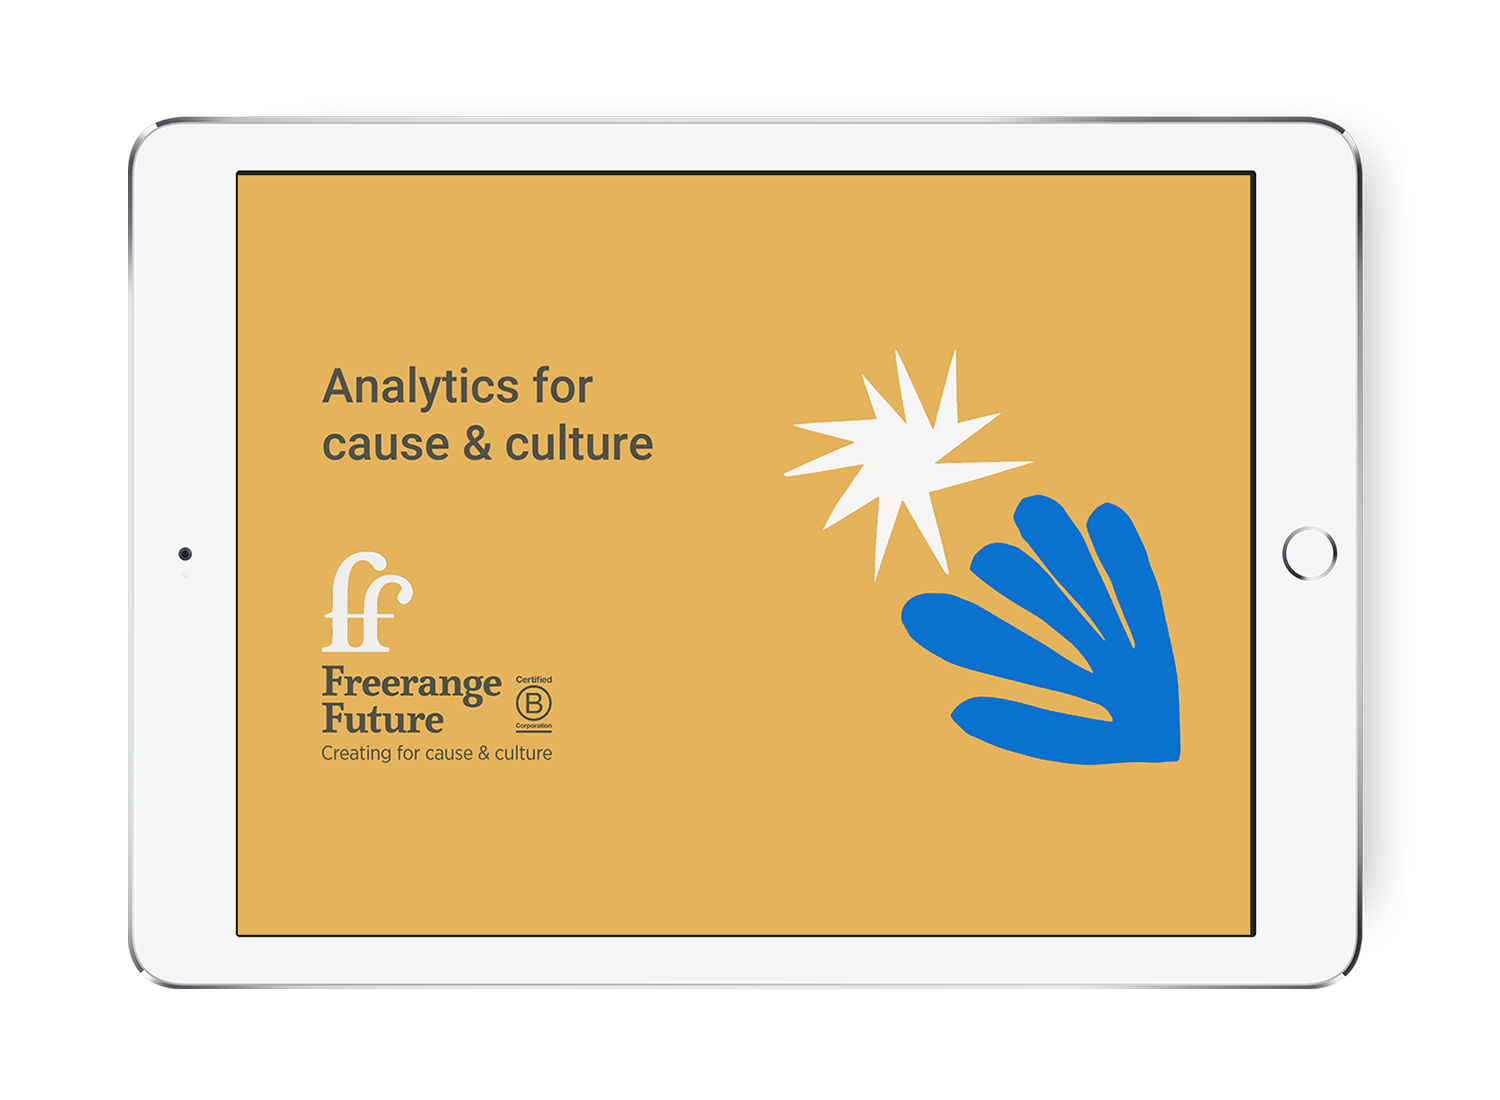 An iPad displays a slide titled 'Analytics for cause & culture'